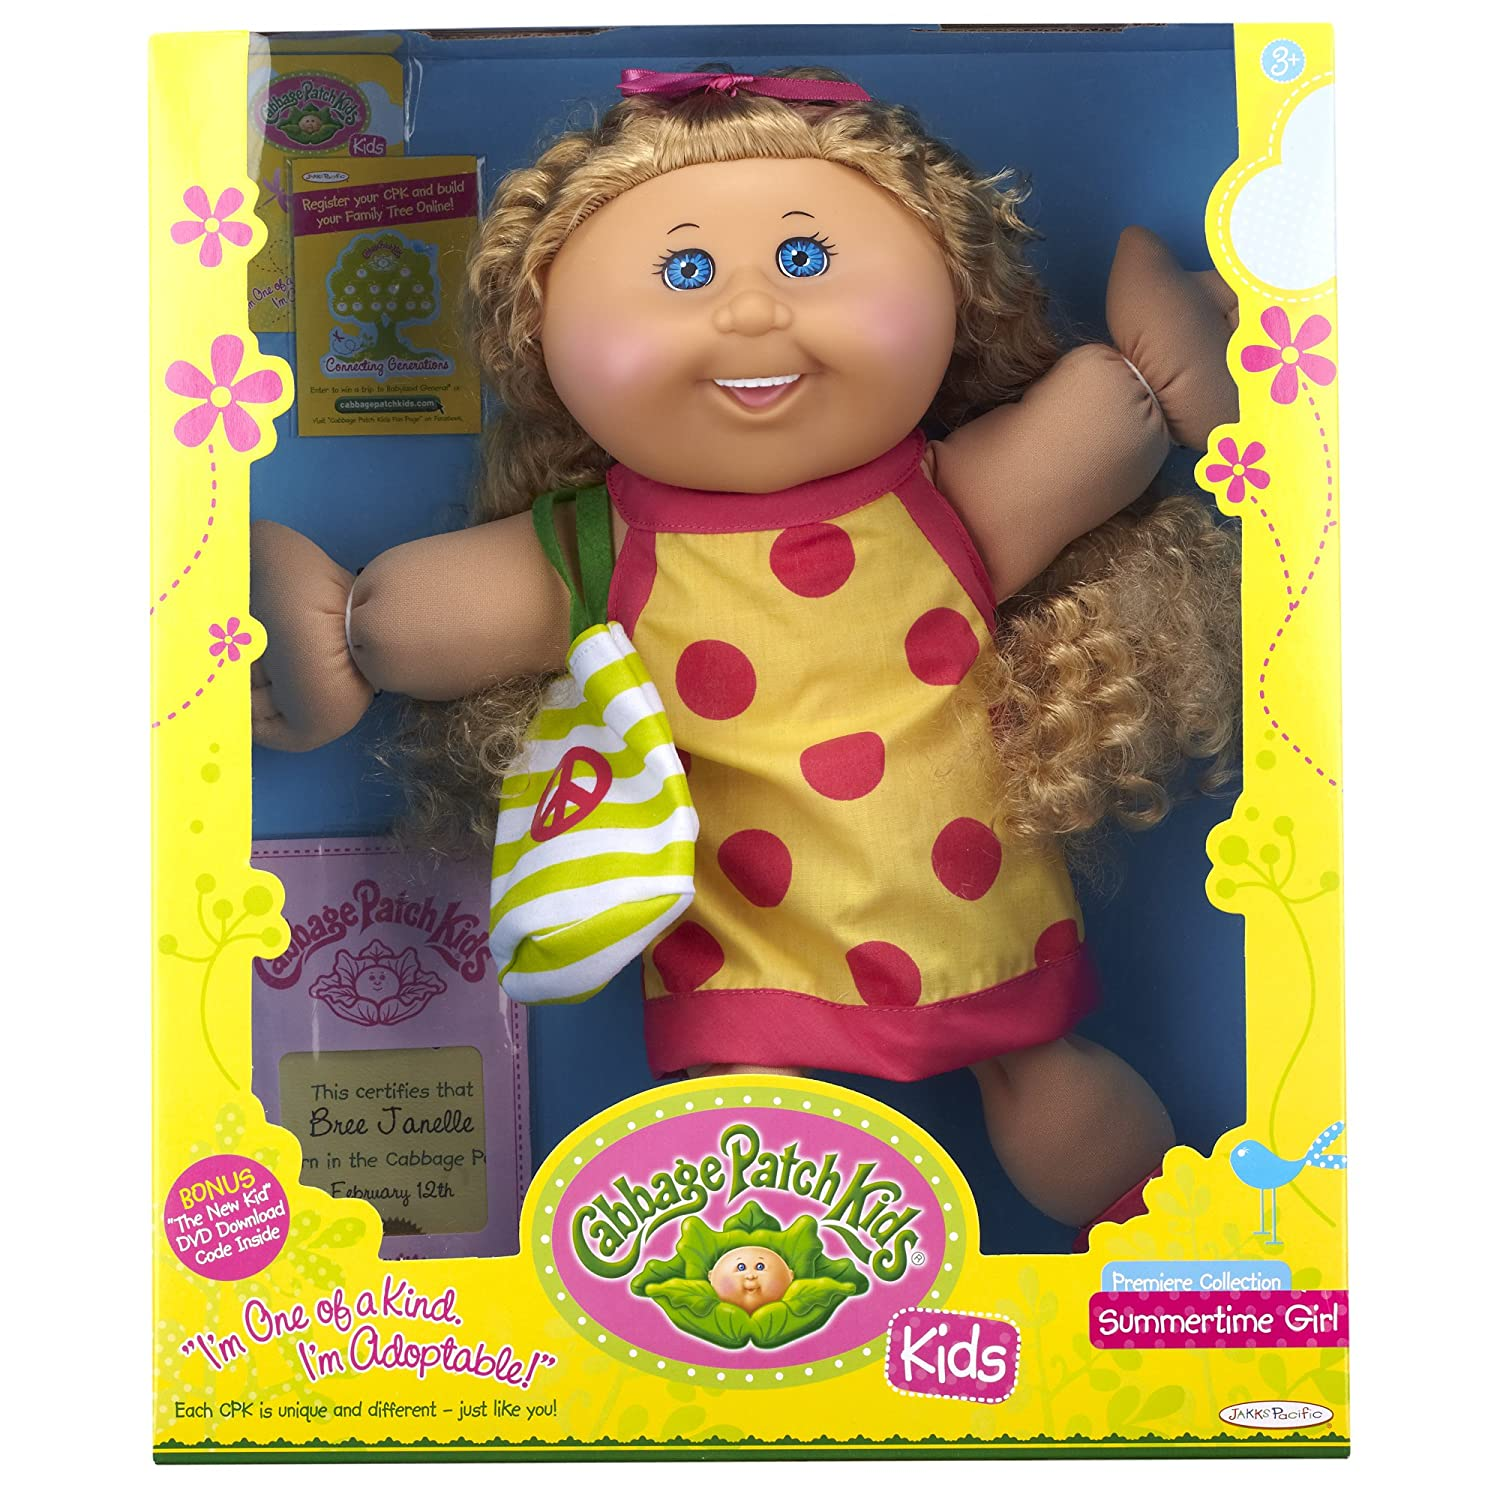 Cabbage Patch Kids Premier Collection Summertime Girl Amazon